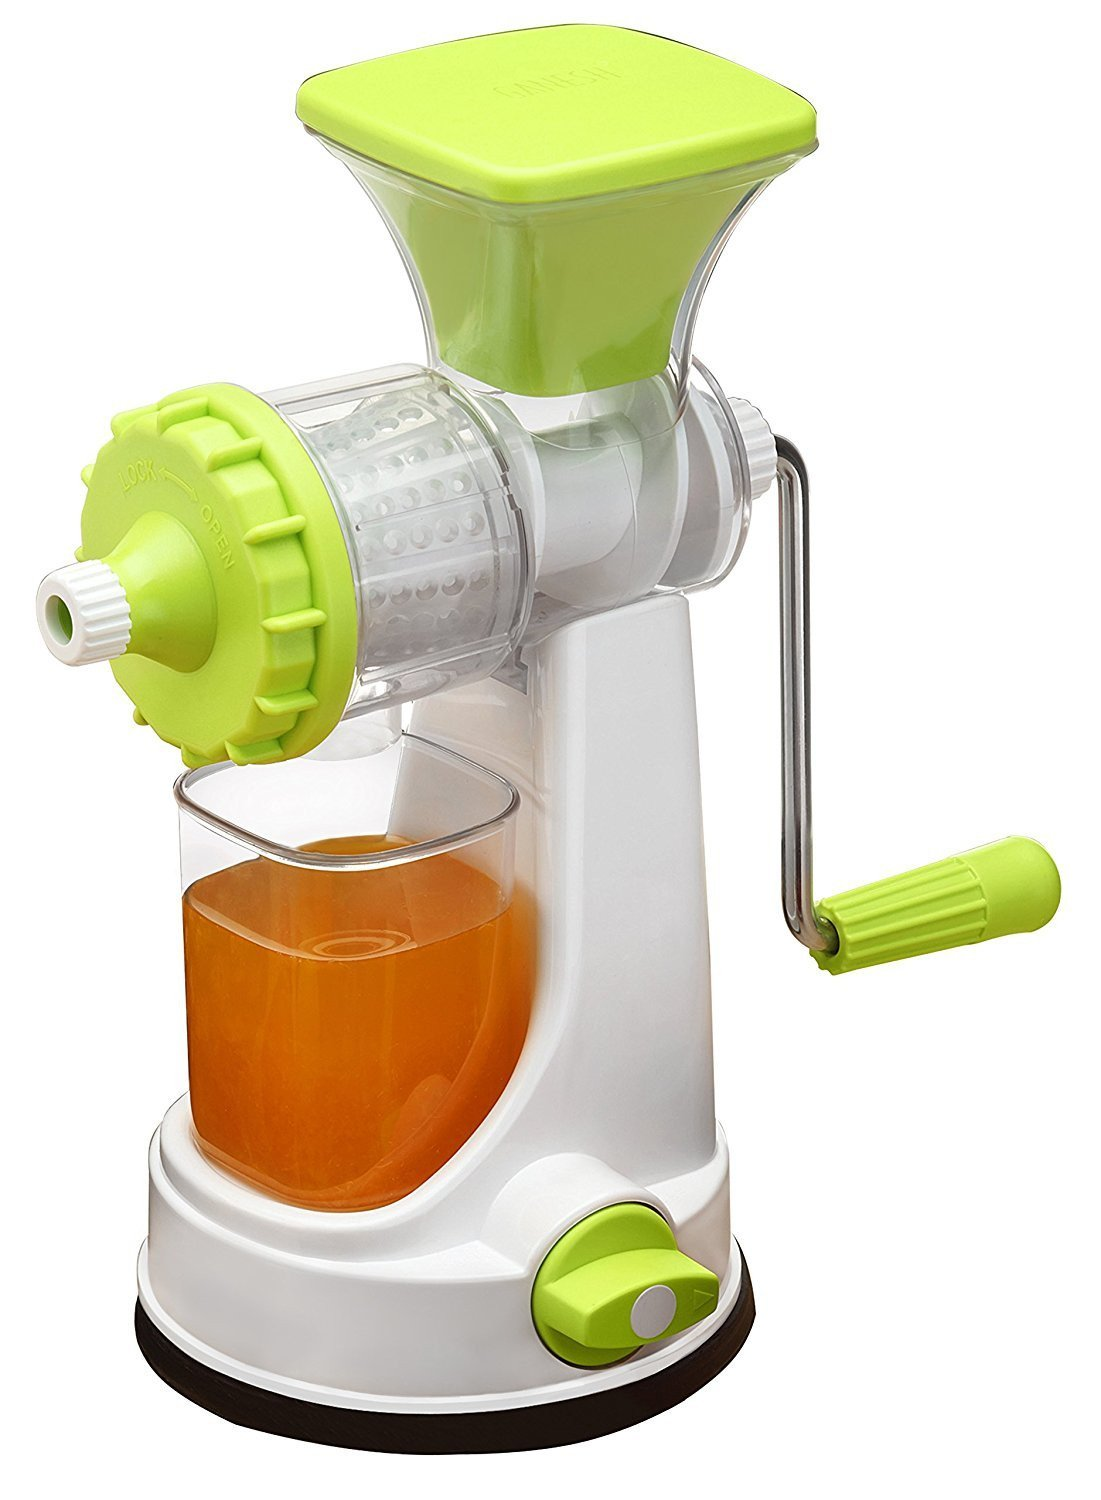 plastic-hand-juicer-manual-juicer-for-fruits-and-vegetables-non-electric-juicer-with-steel-handle-and-waste-collector-green-pack-of-1